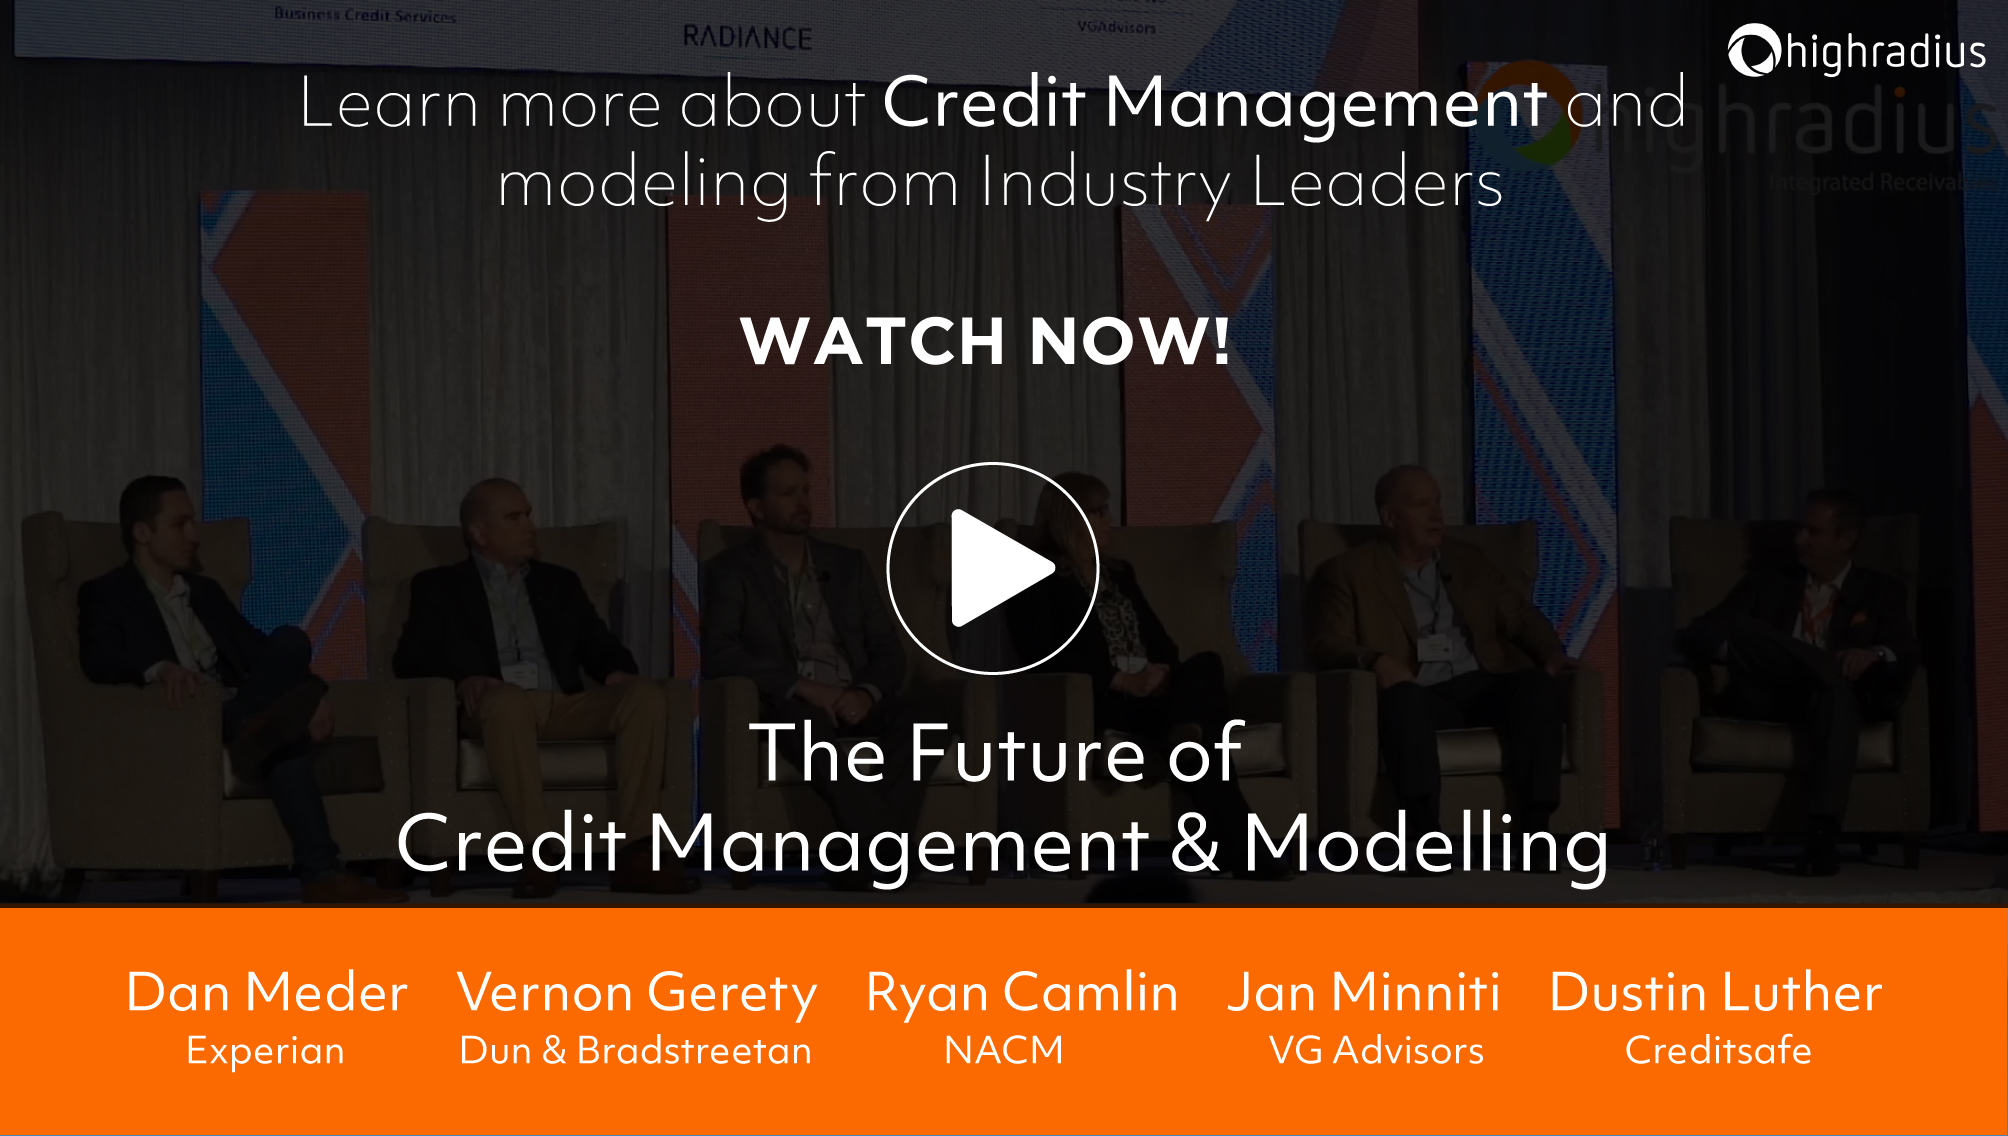 The Future of Credit Management & Modelling